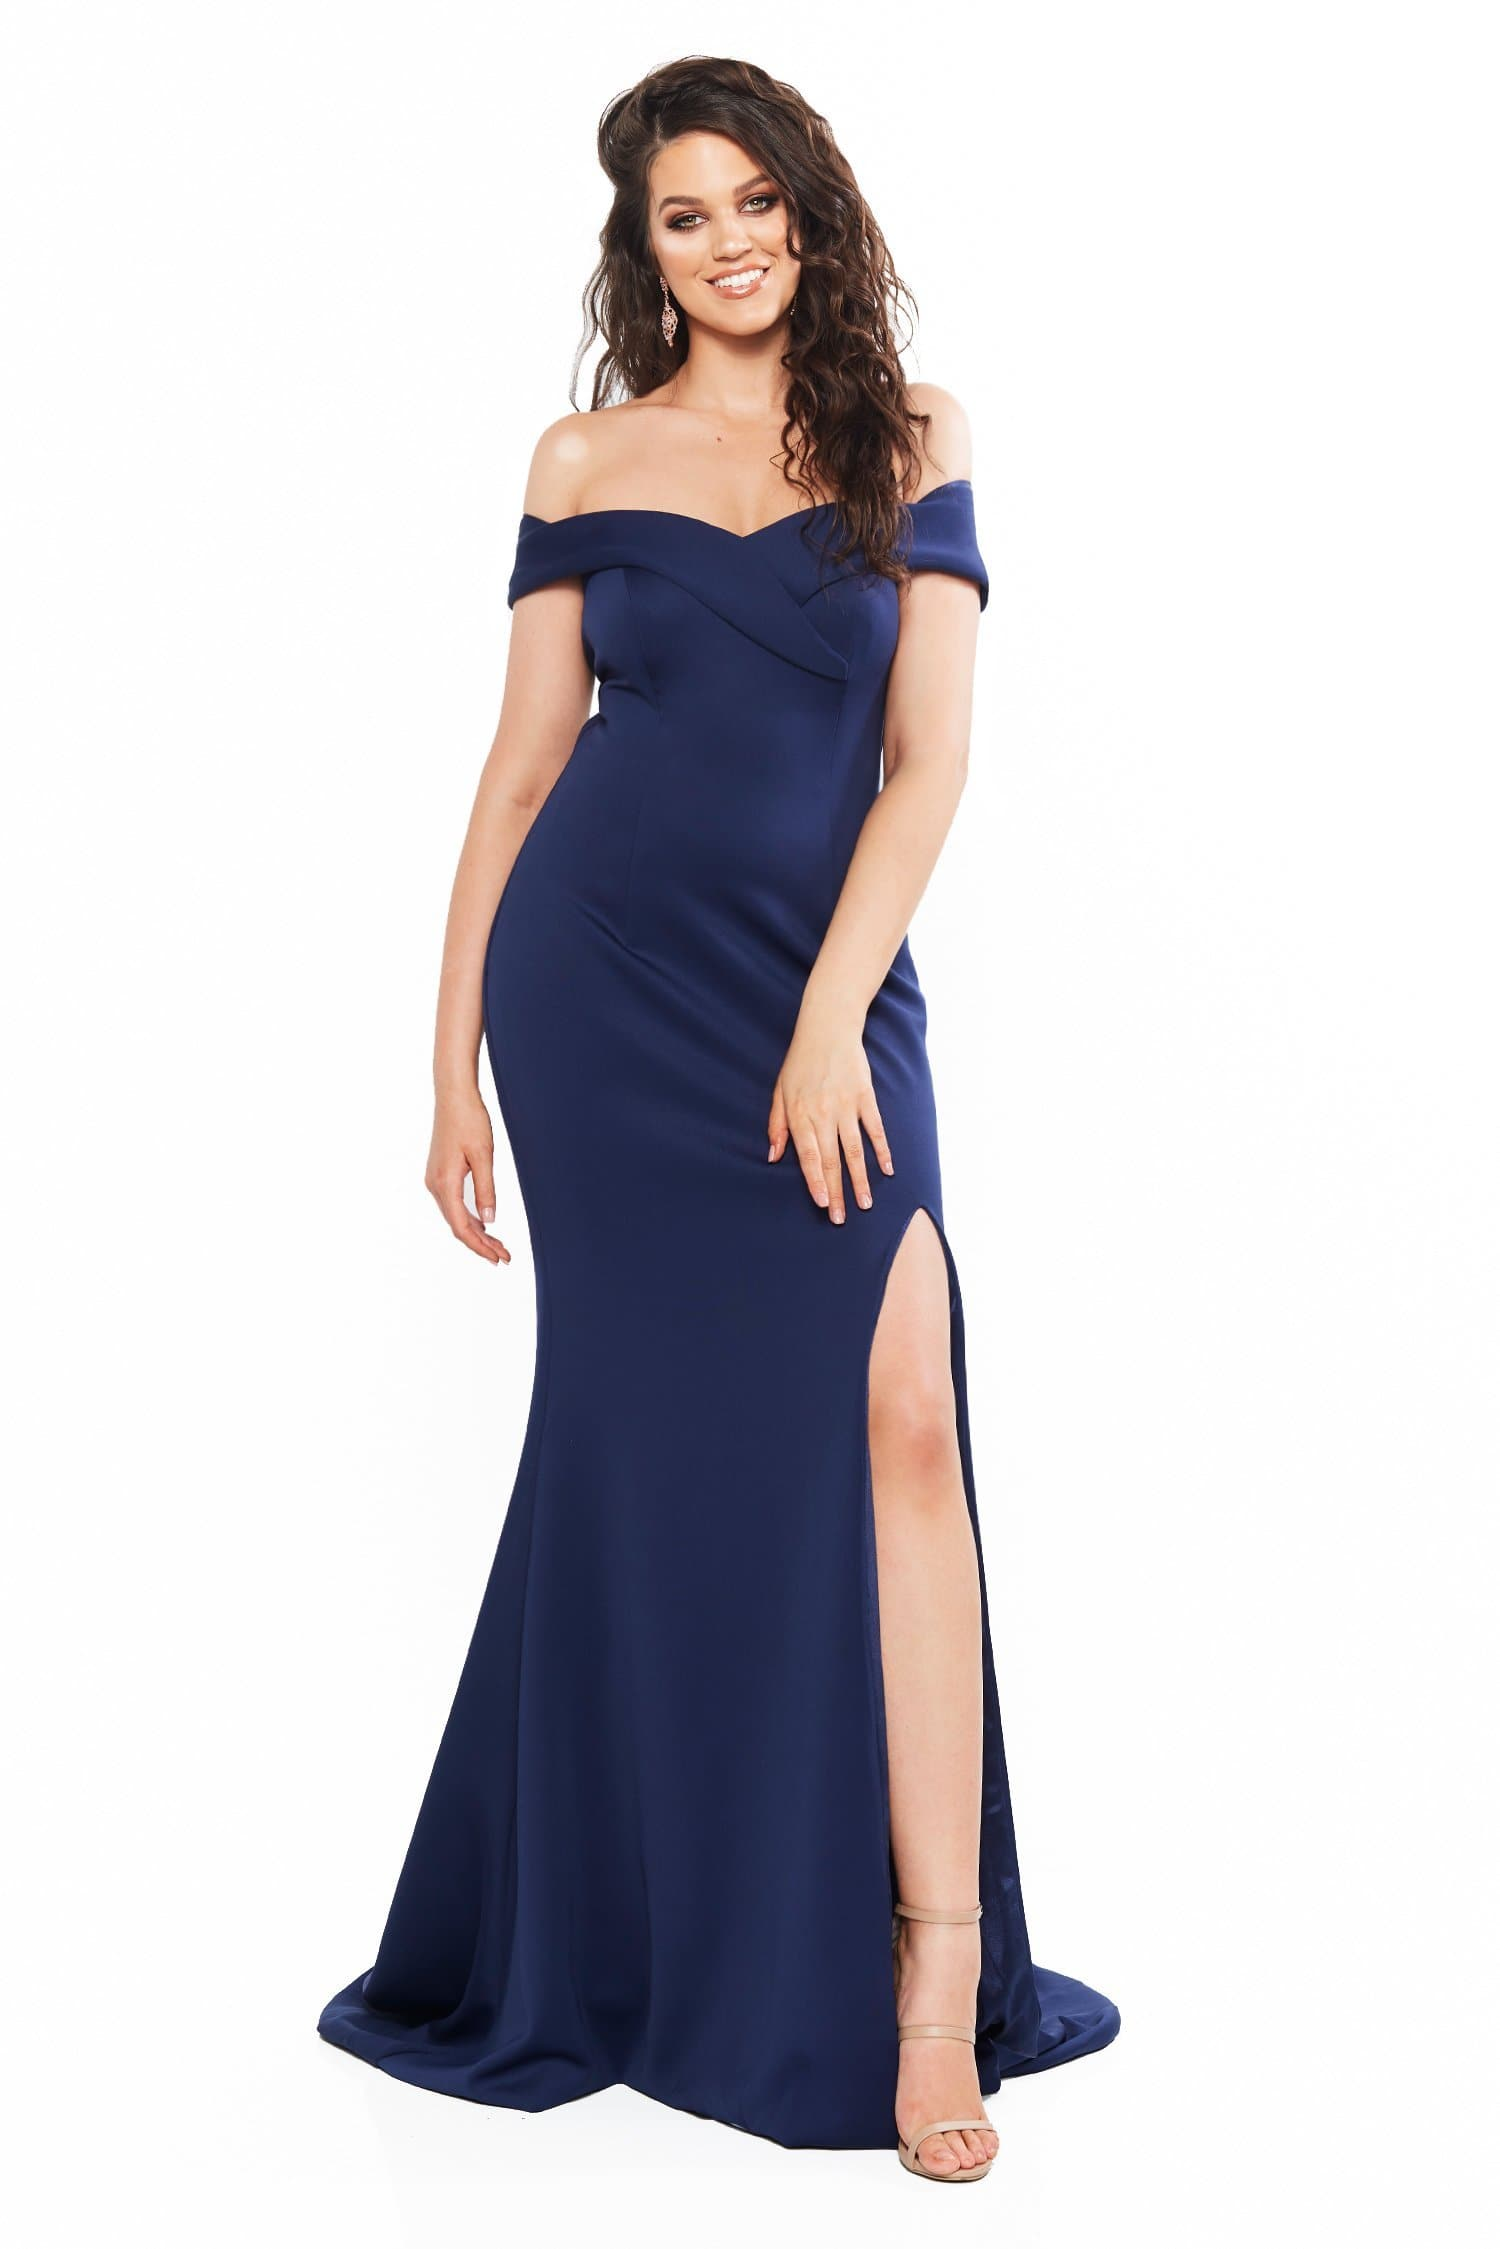 A&N Curve Ester Ponti Off-Shoulder Gown with Slit - Navy